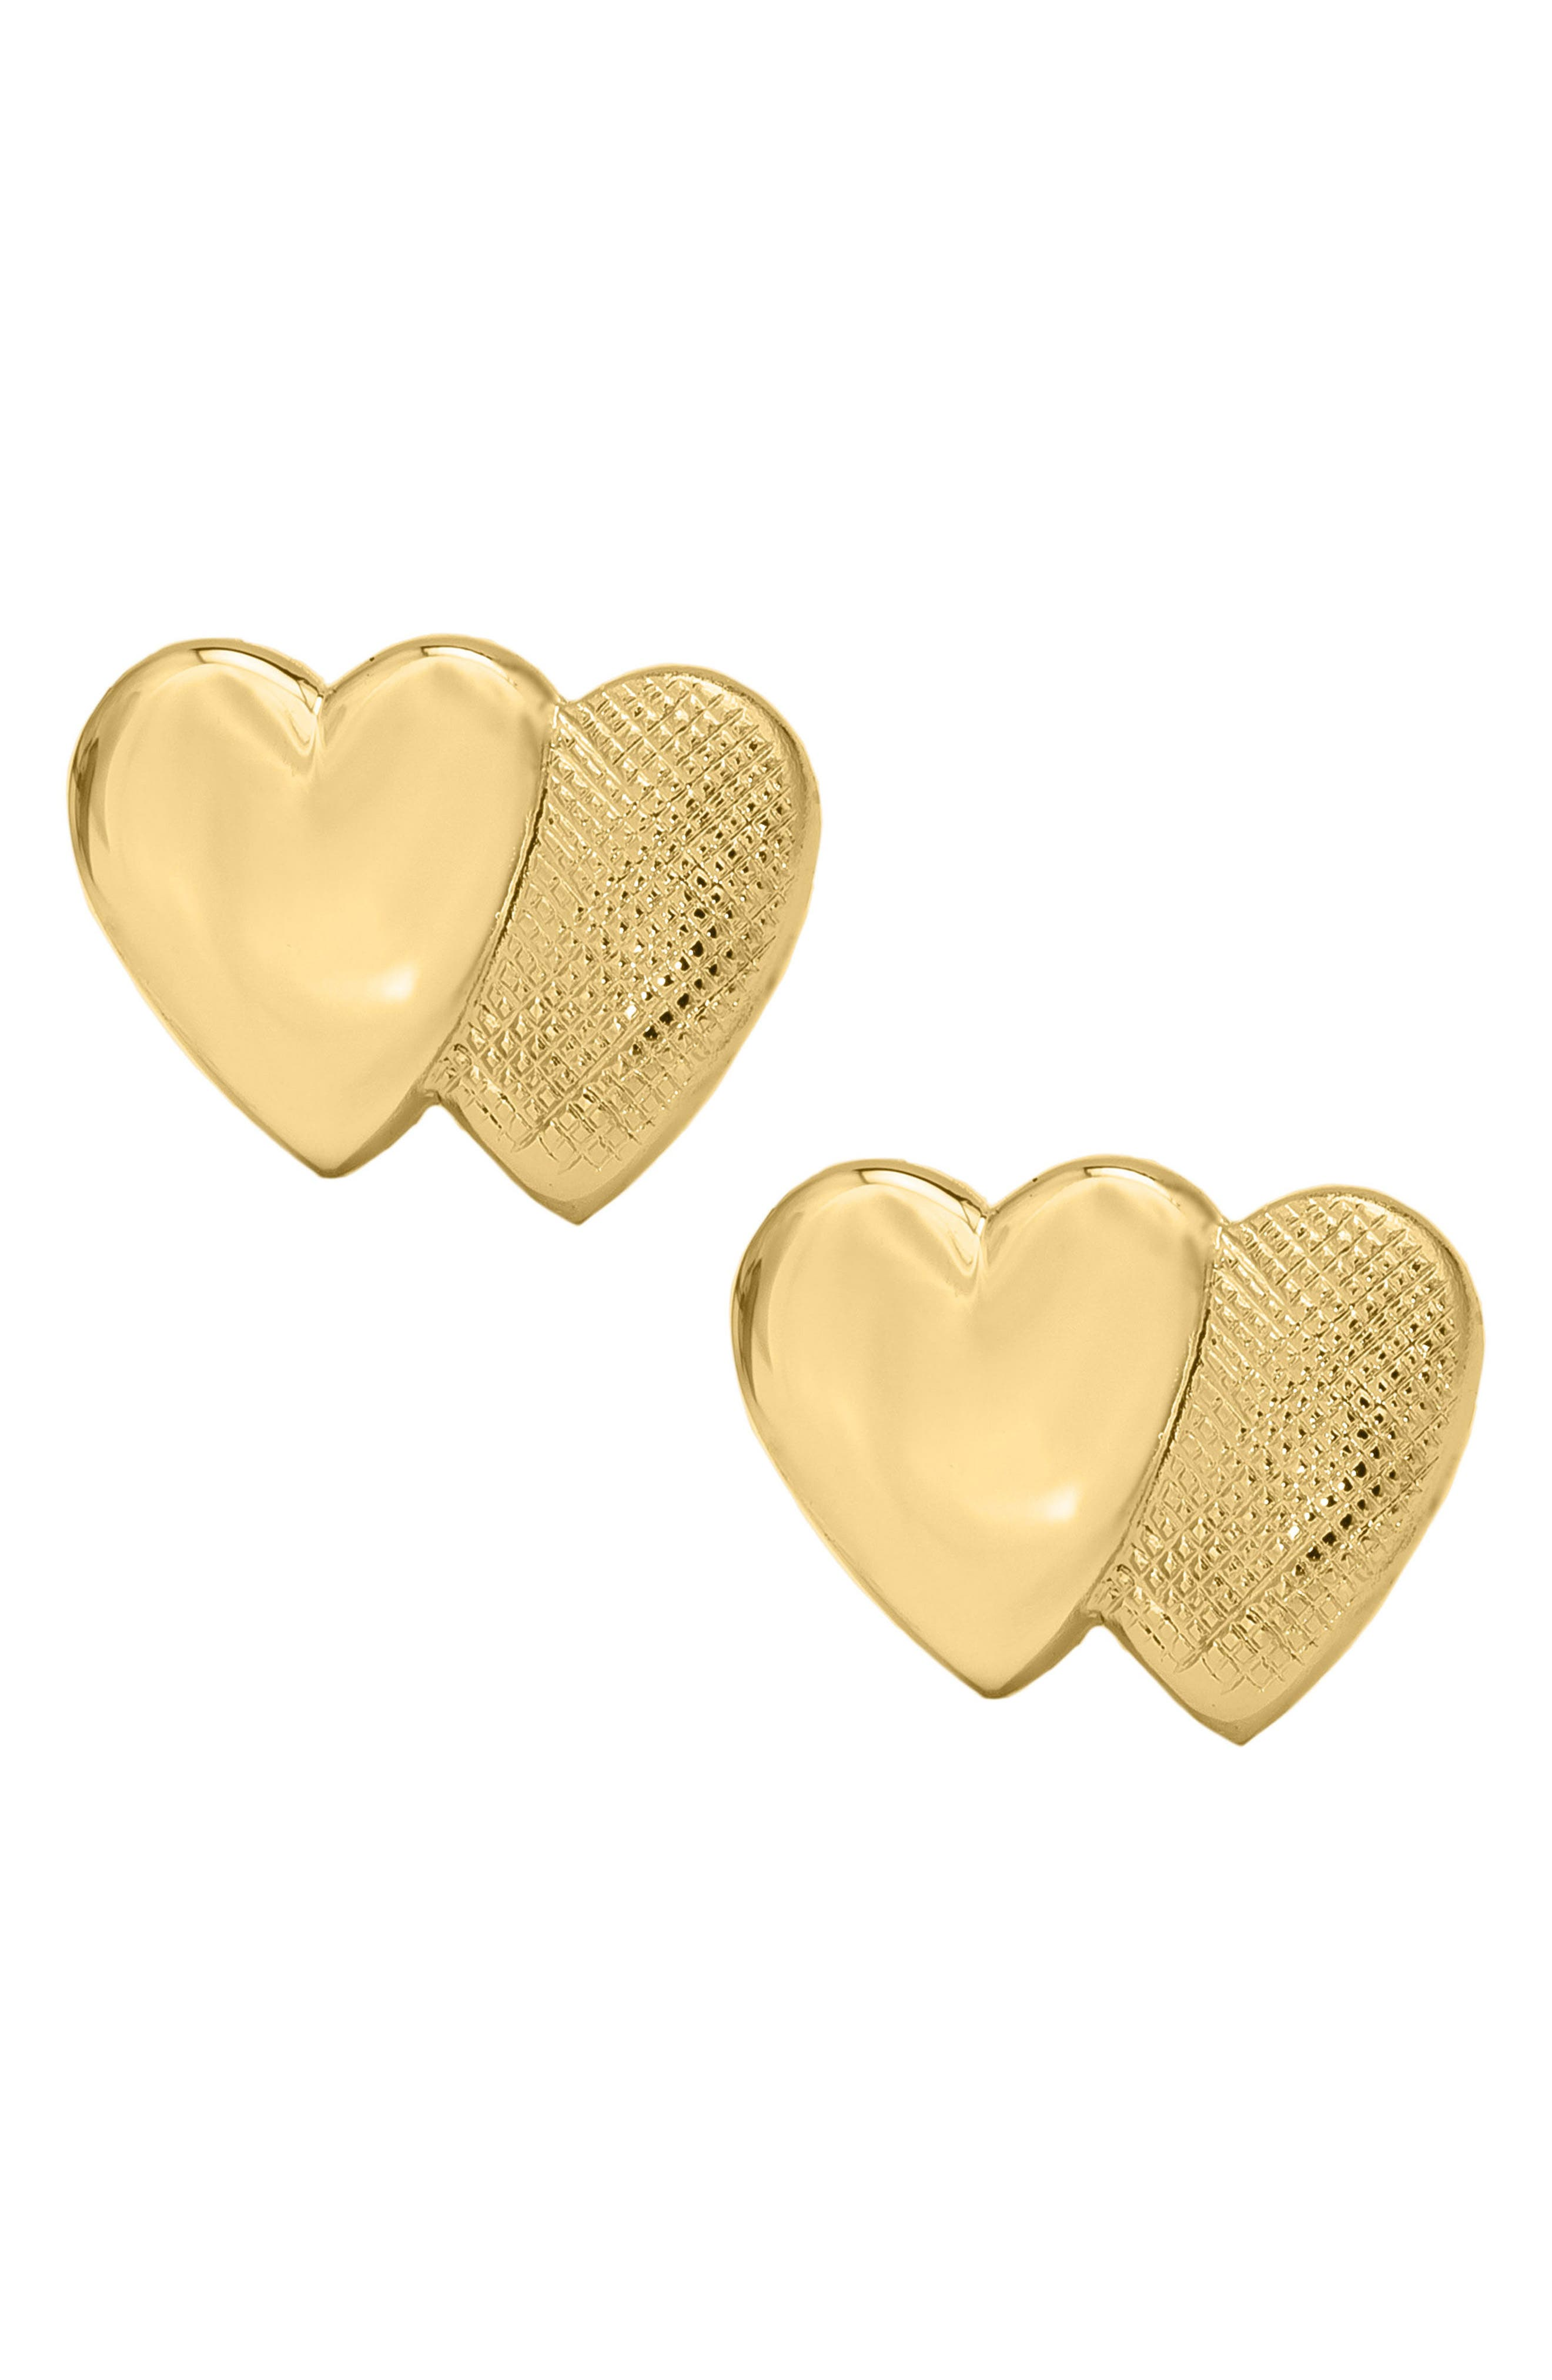 14k Gold Double Heart Earrings,                         Main,                         color, GOLD